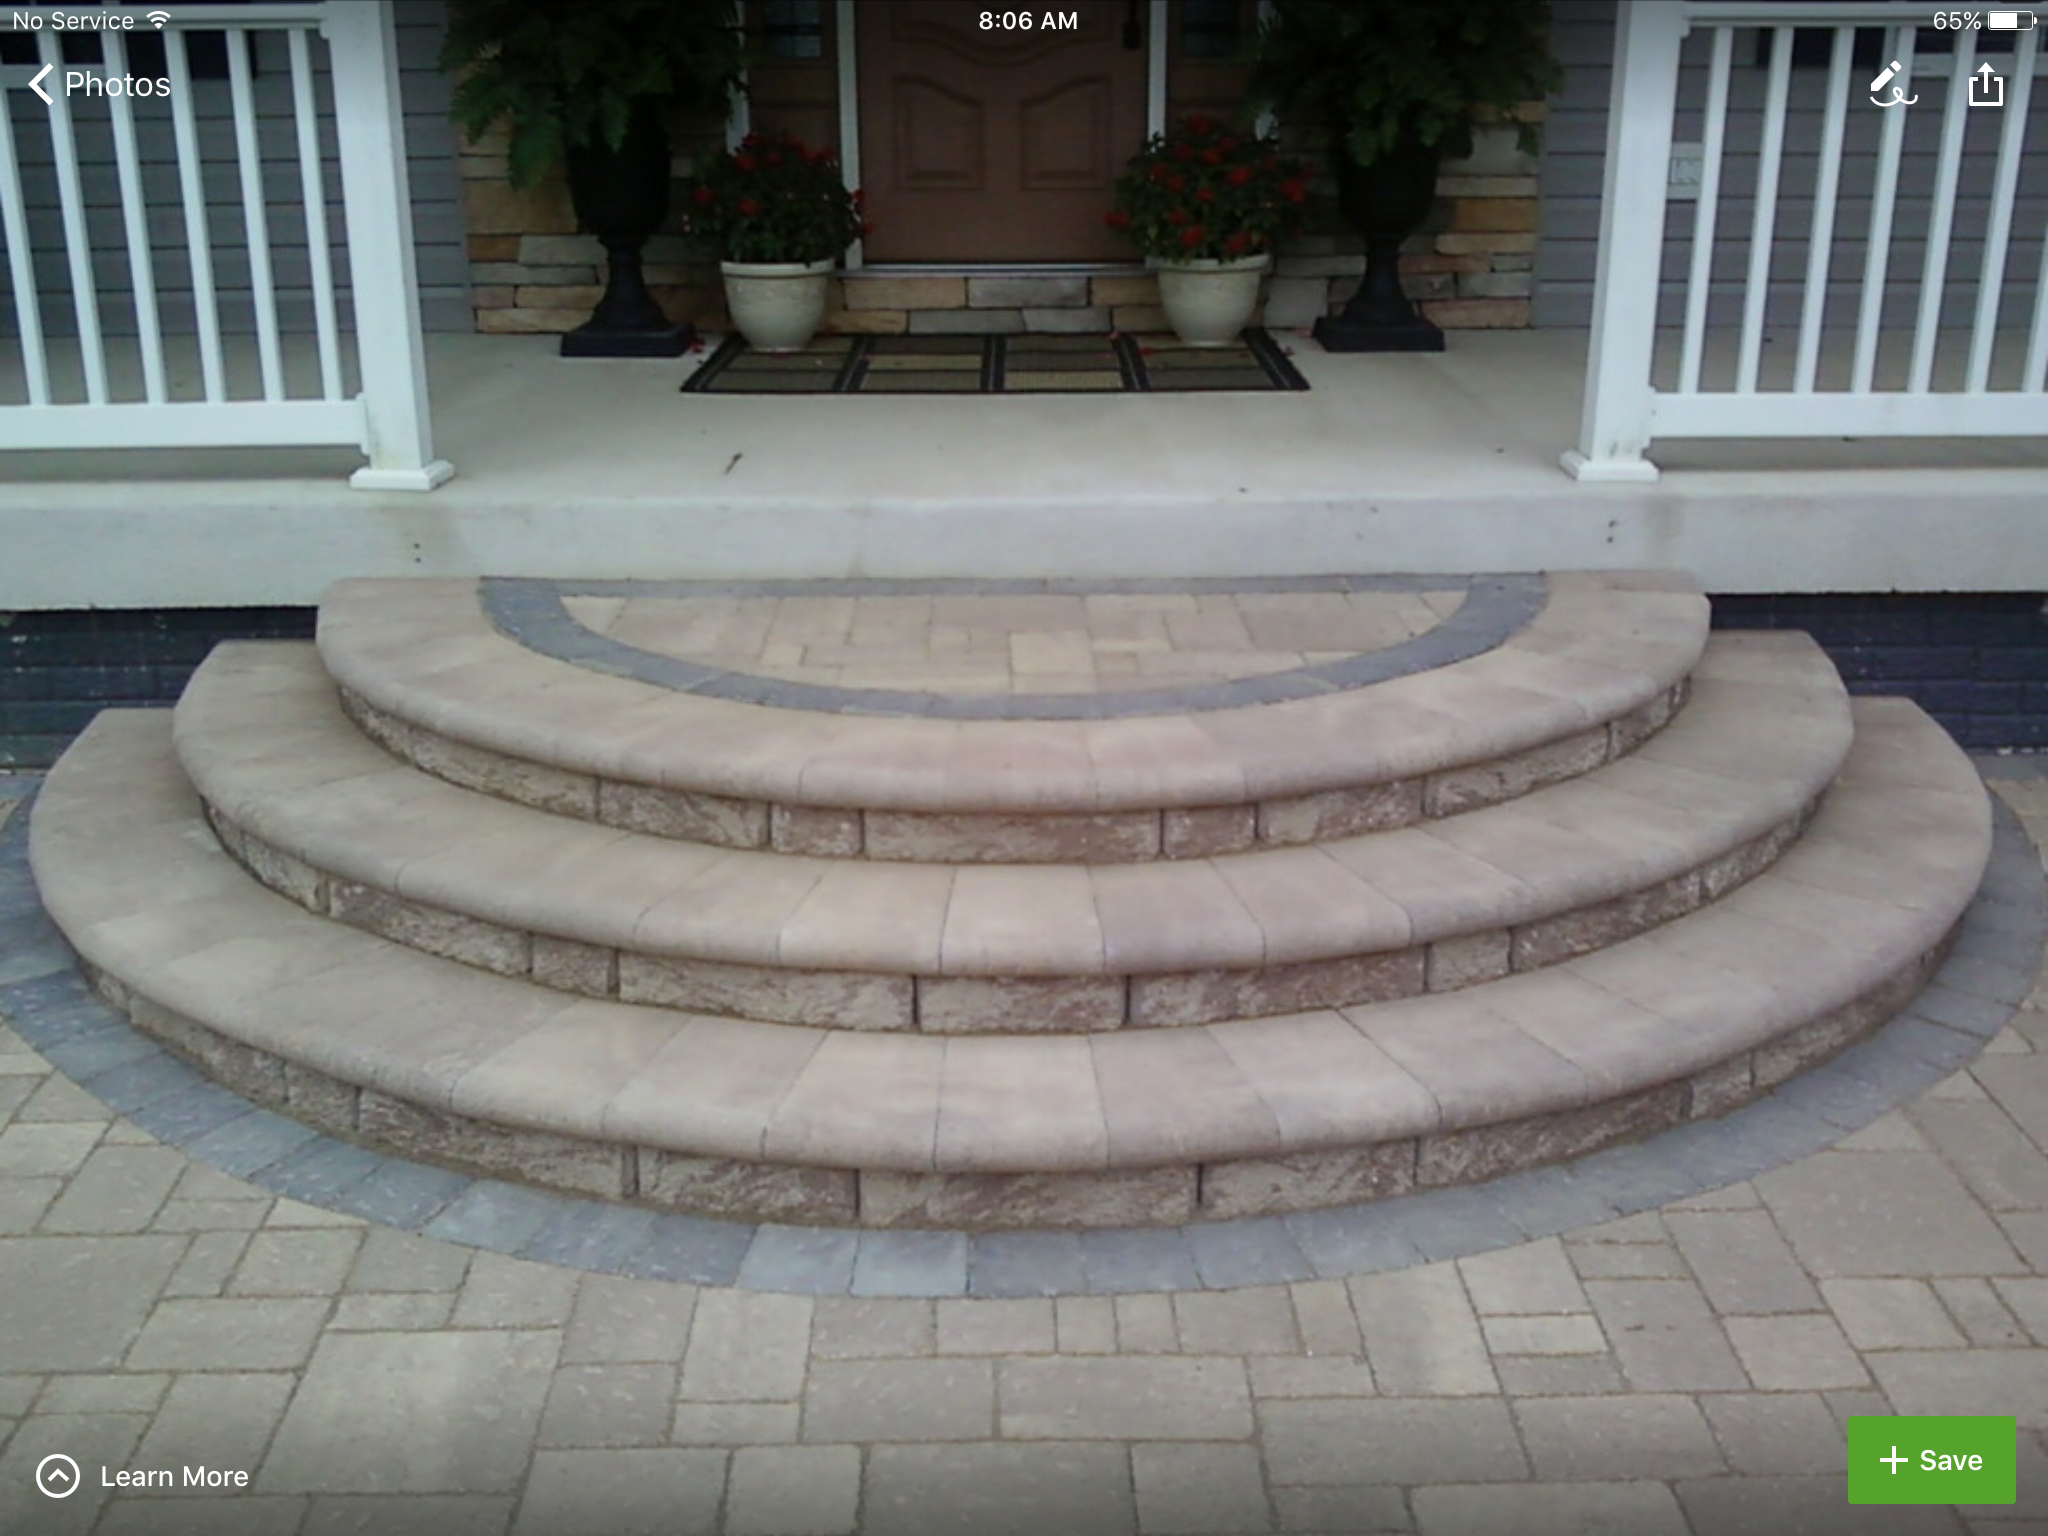 Pin by Michael Kneer on Concrete and stone steps | Pinterest ...